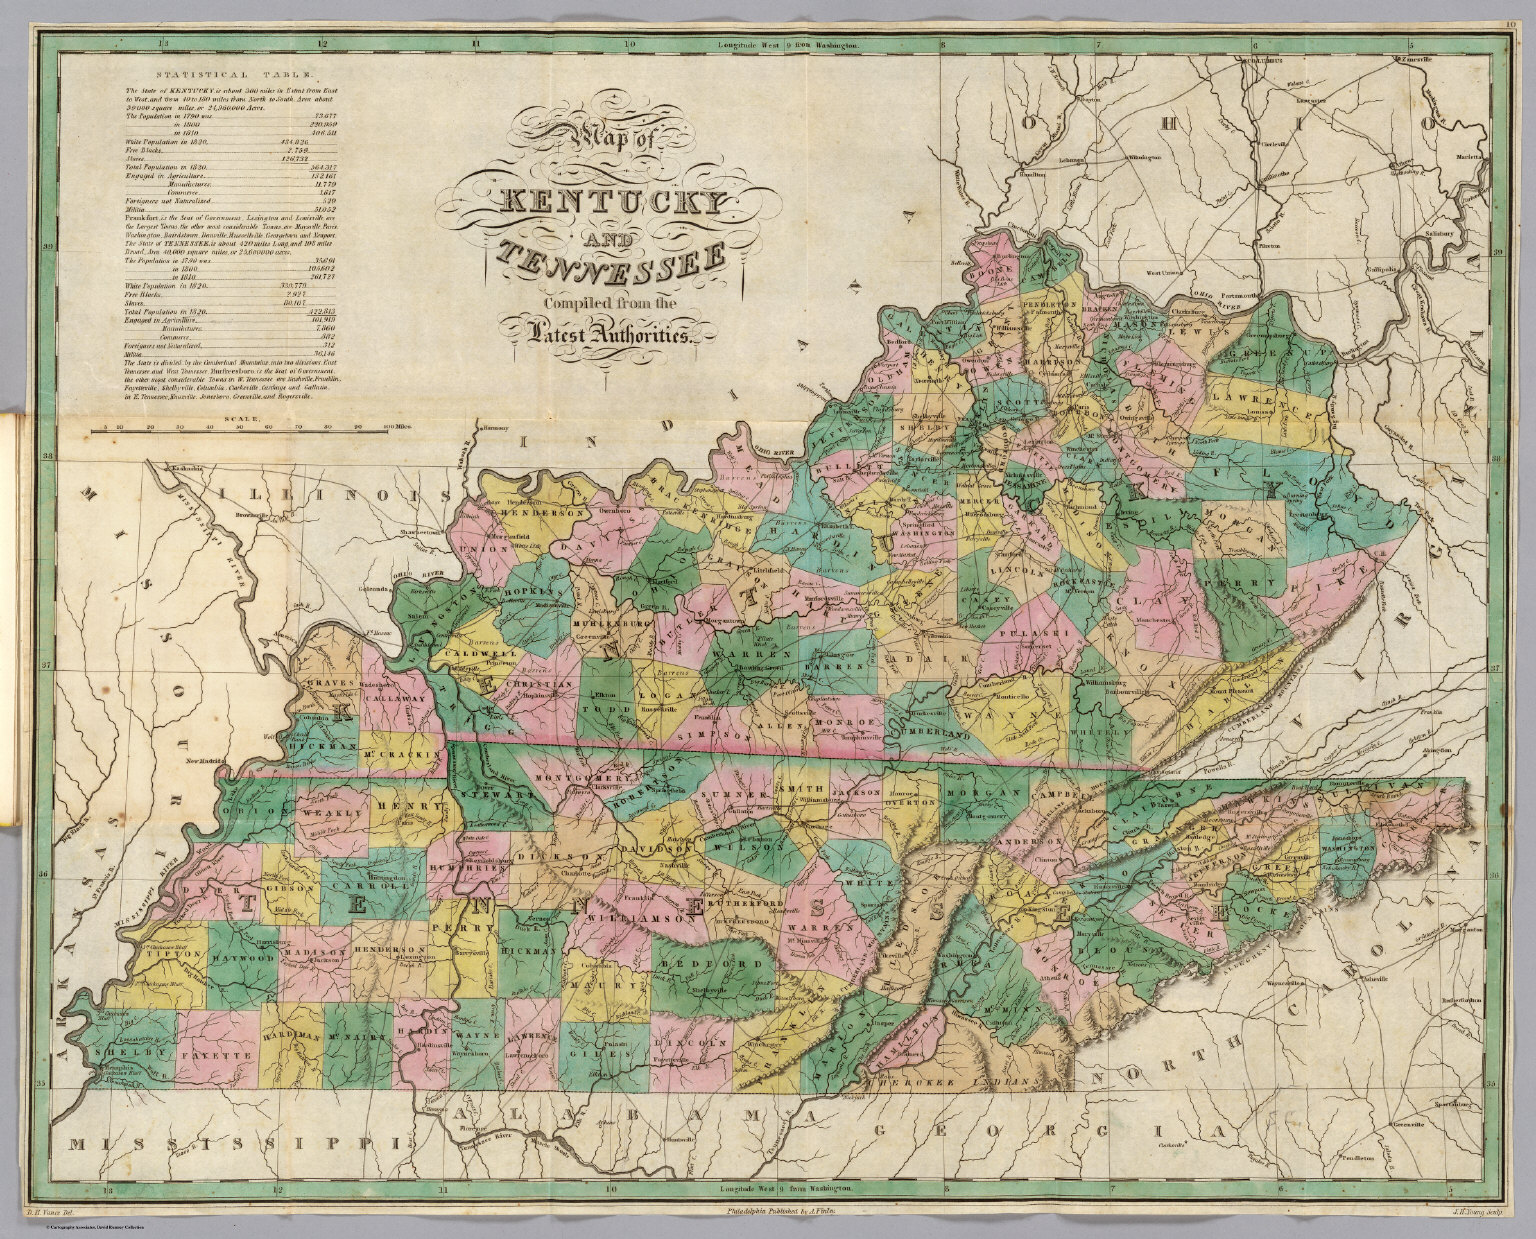 Kentucky Tennessee David Rumsey Historical Map Collection - Kentucky tennessee map